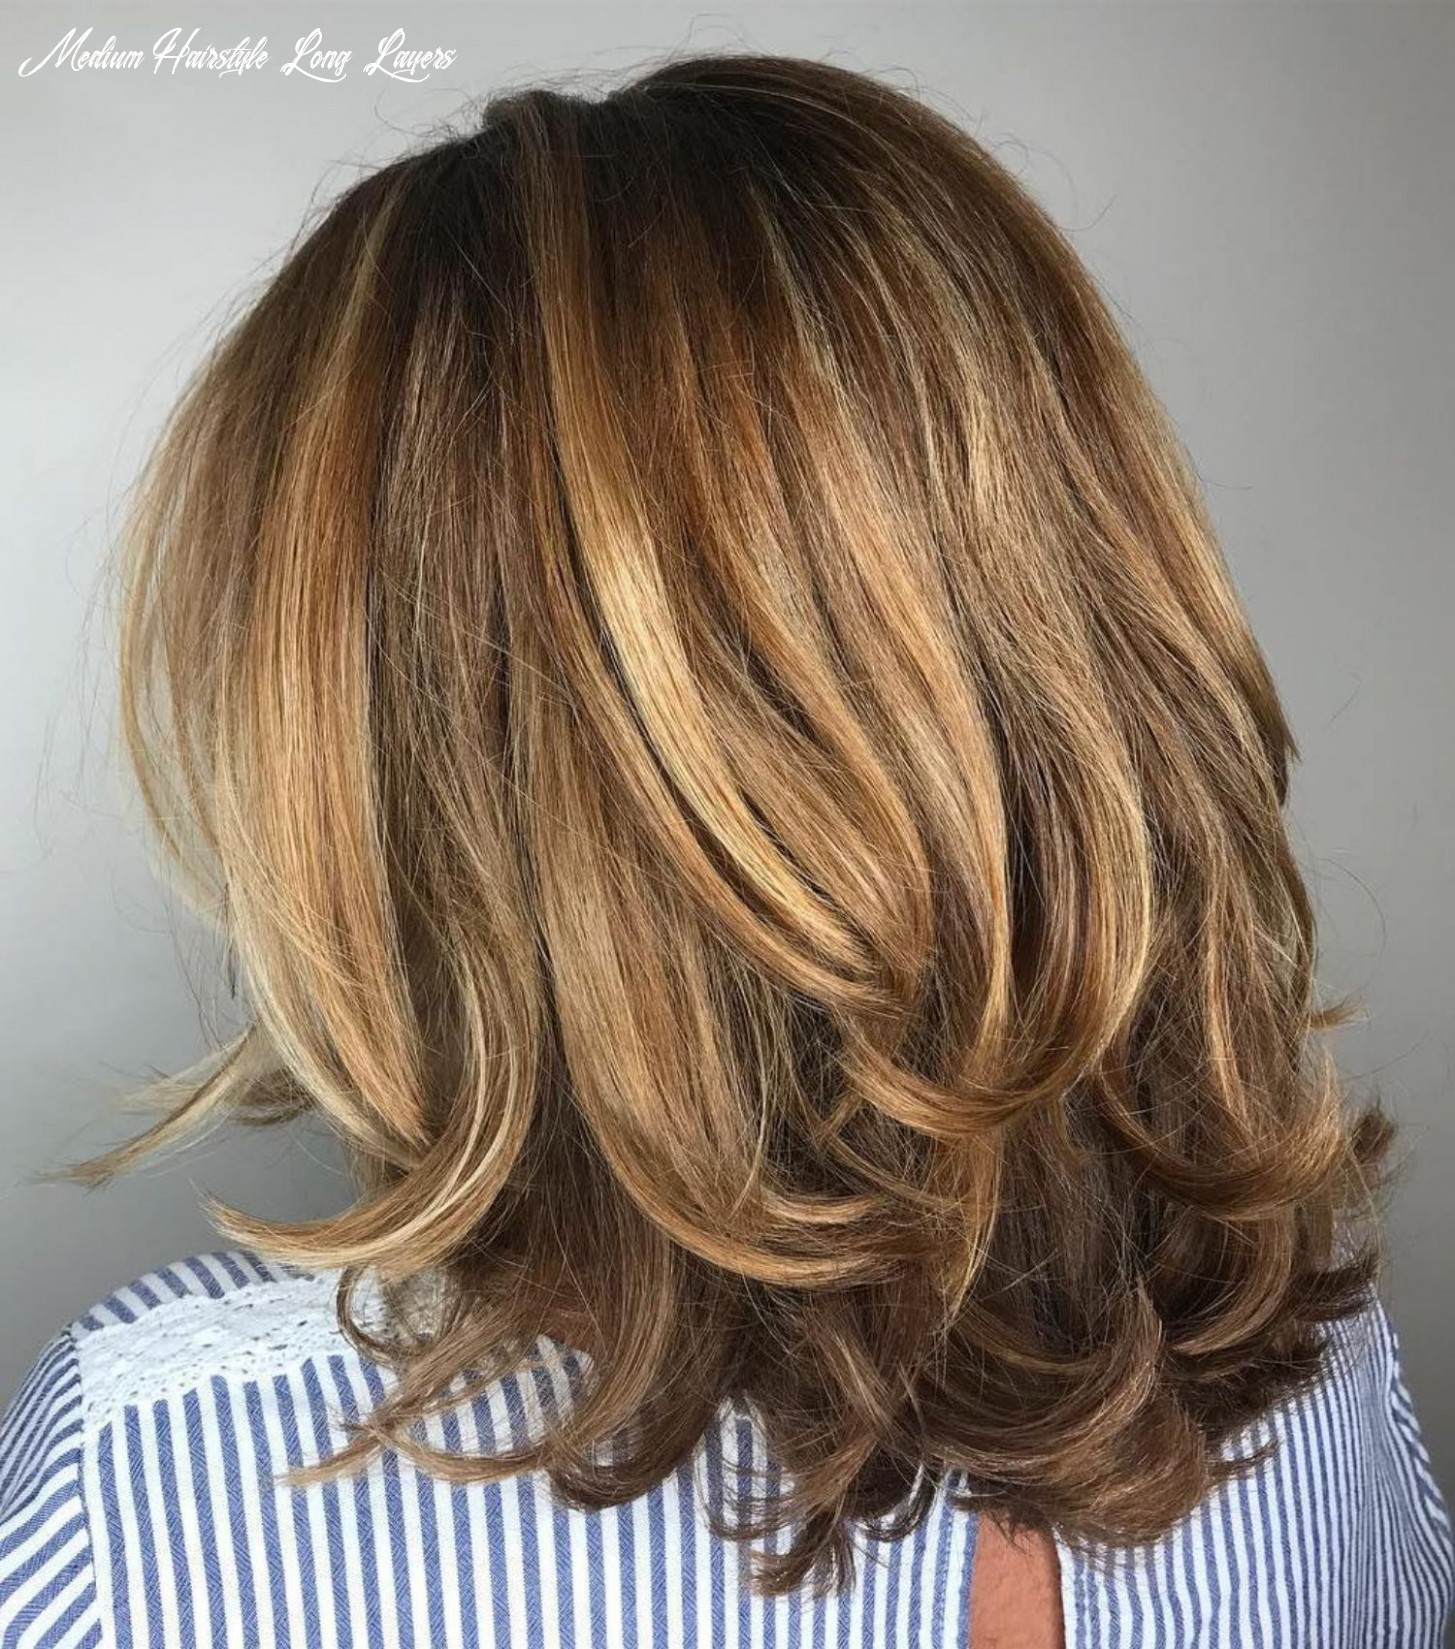 12 modern haircuts for women over 12 with extra zing in 12